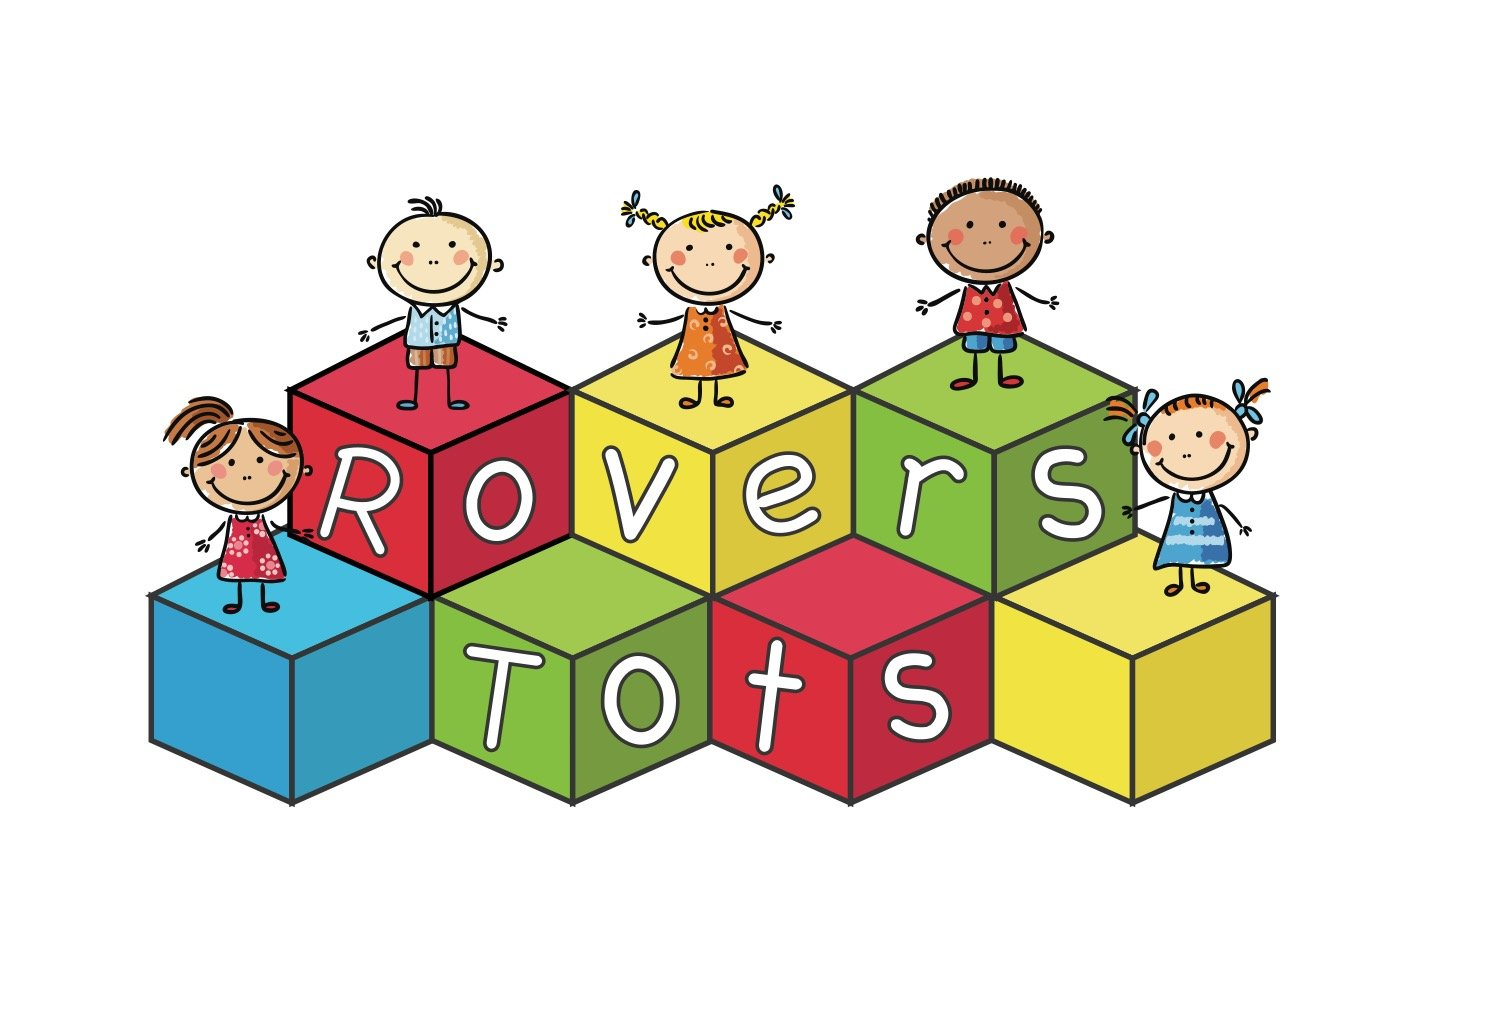 rovers_tots